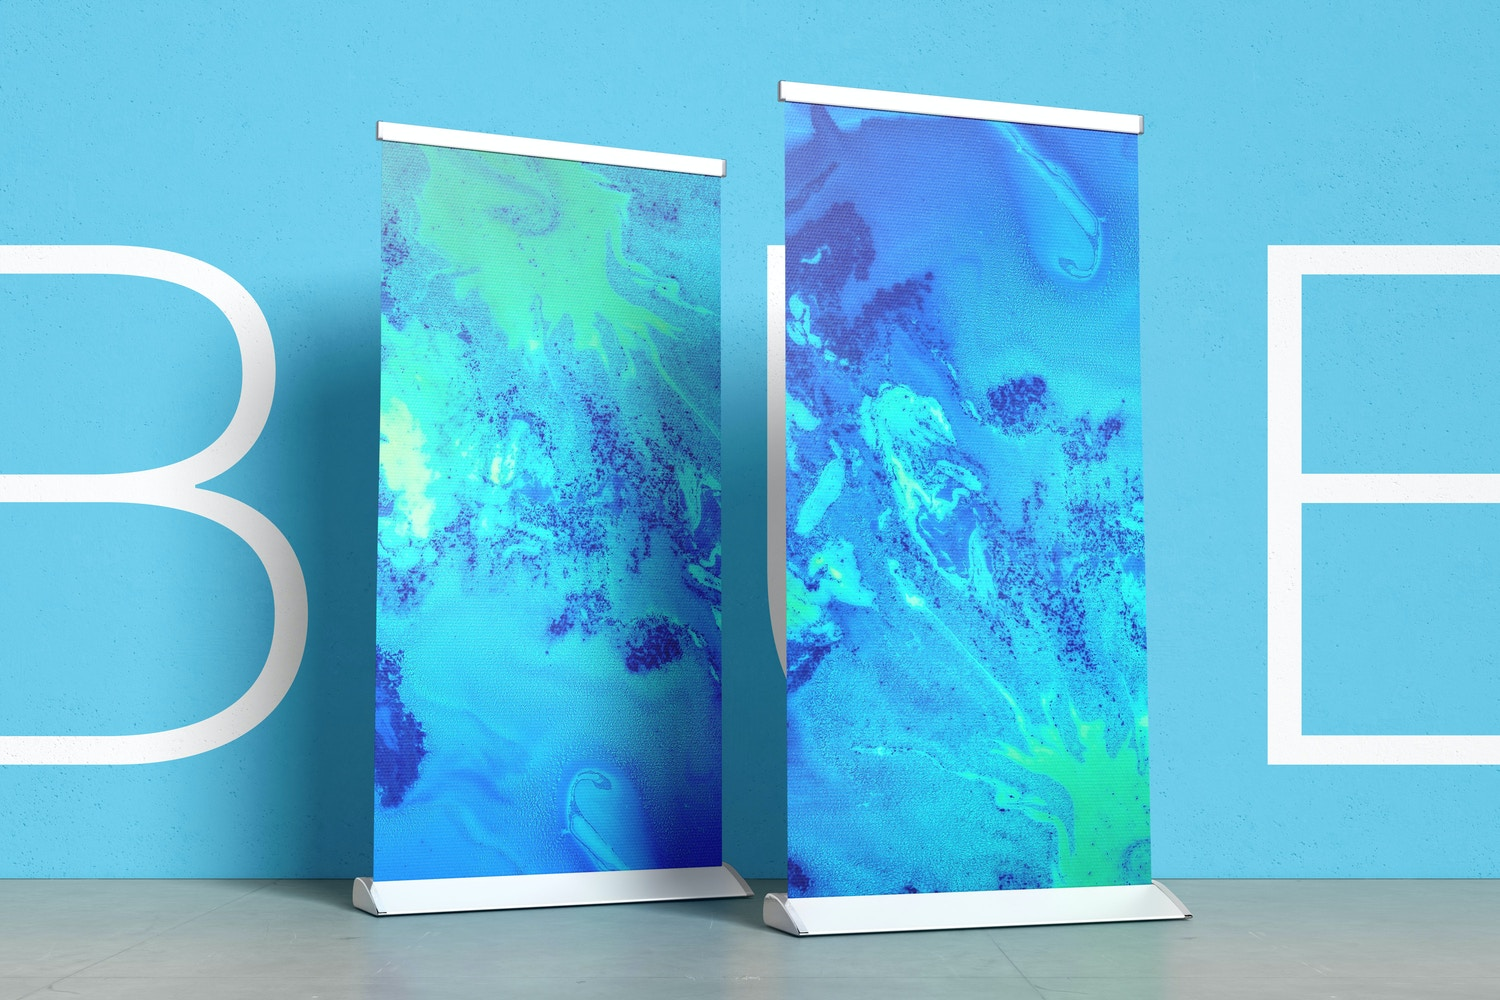 Place a beautiful design or texture on the background wall that combines with your roll-up banner design